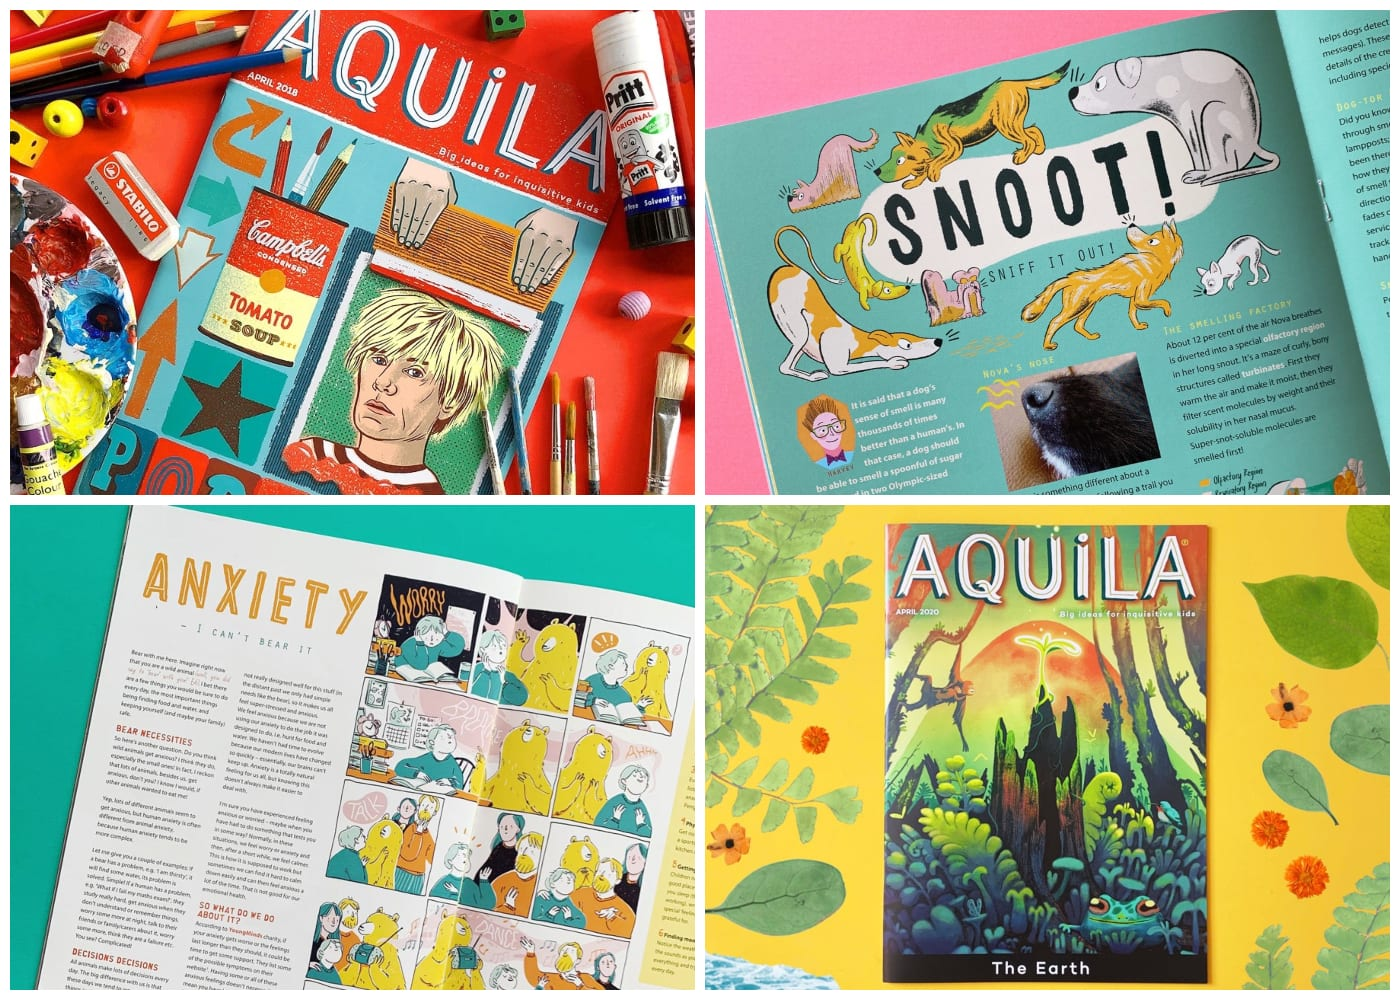 Aquila | magazine subscriptions for kids in singapore